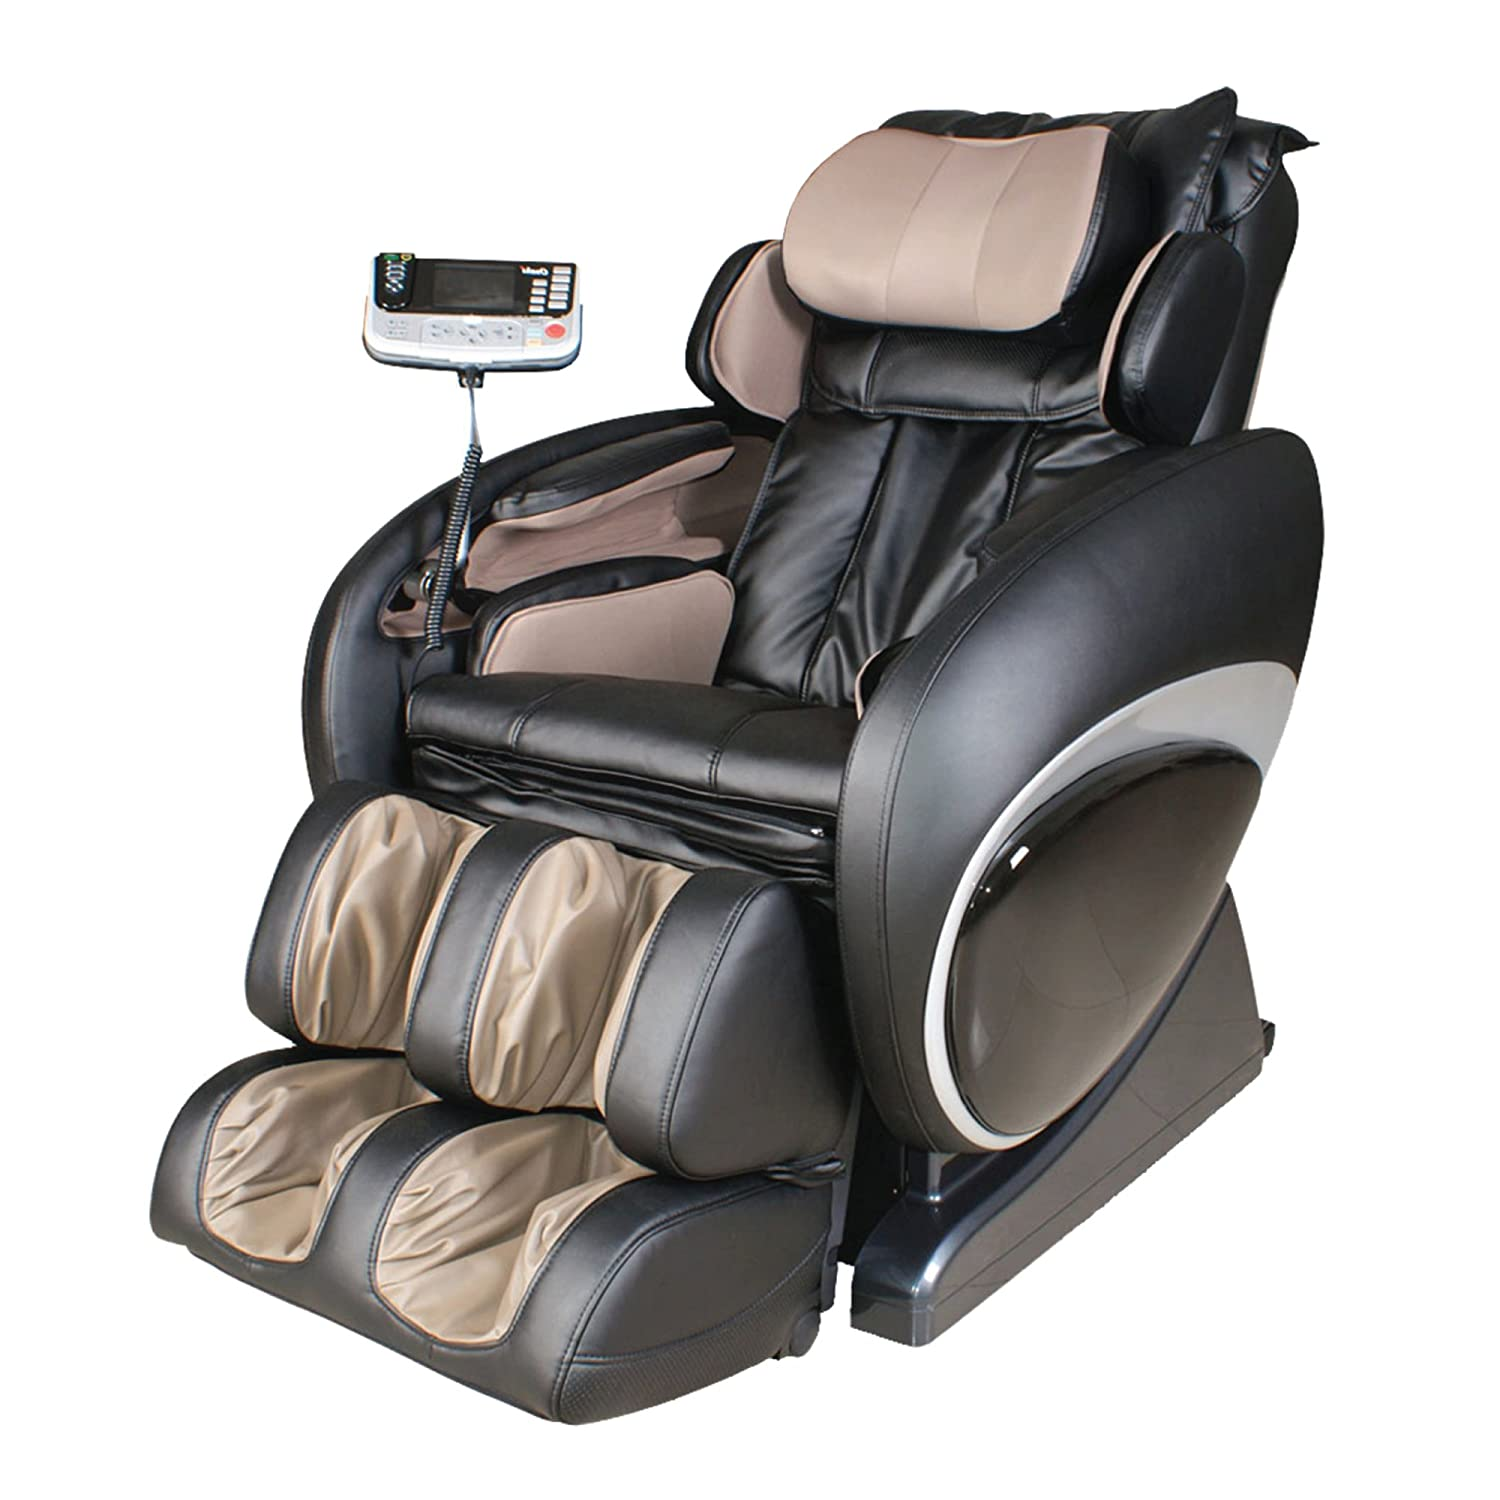 Genial Amazon.com: OSAKI OS 4000 Zero Gravity Massage Chair, Charcoal: Kitchen U0026  Dining